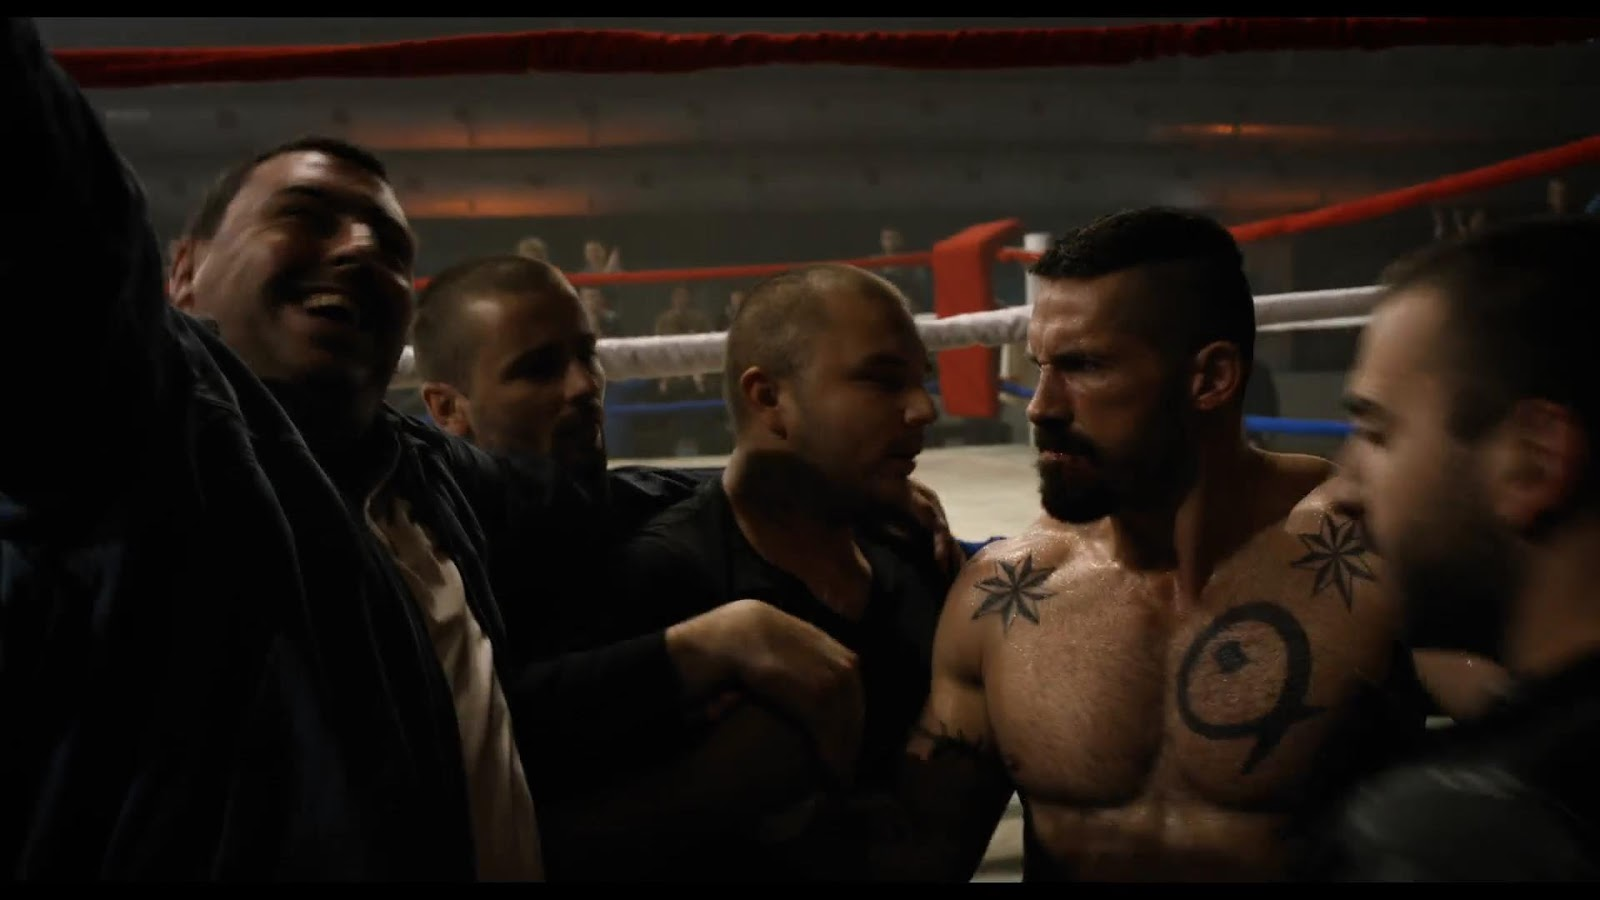 Boyka: Invicto 4 (2016) HD 1080p Español Latino – Ingles captura 1